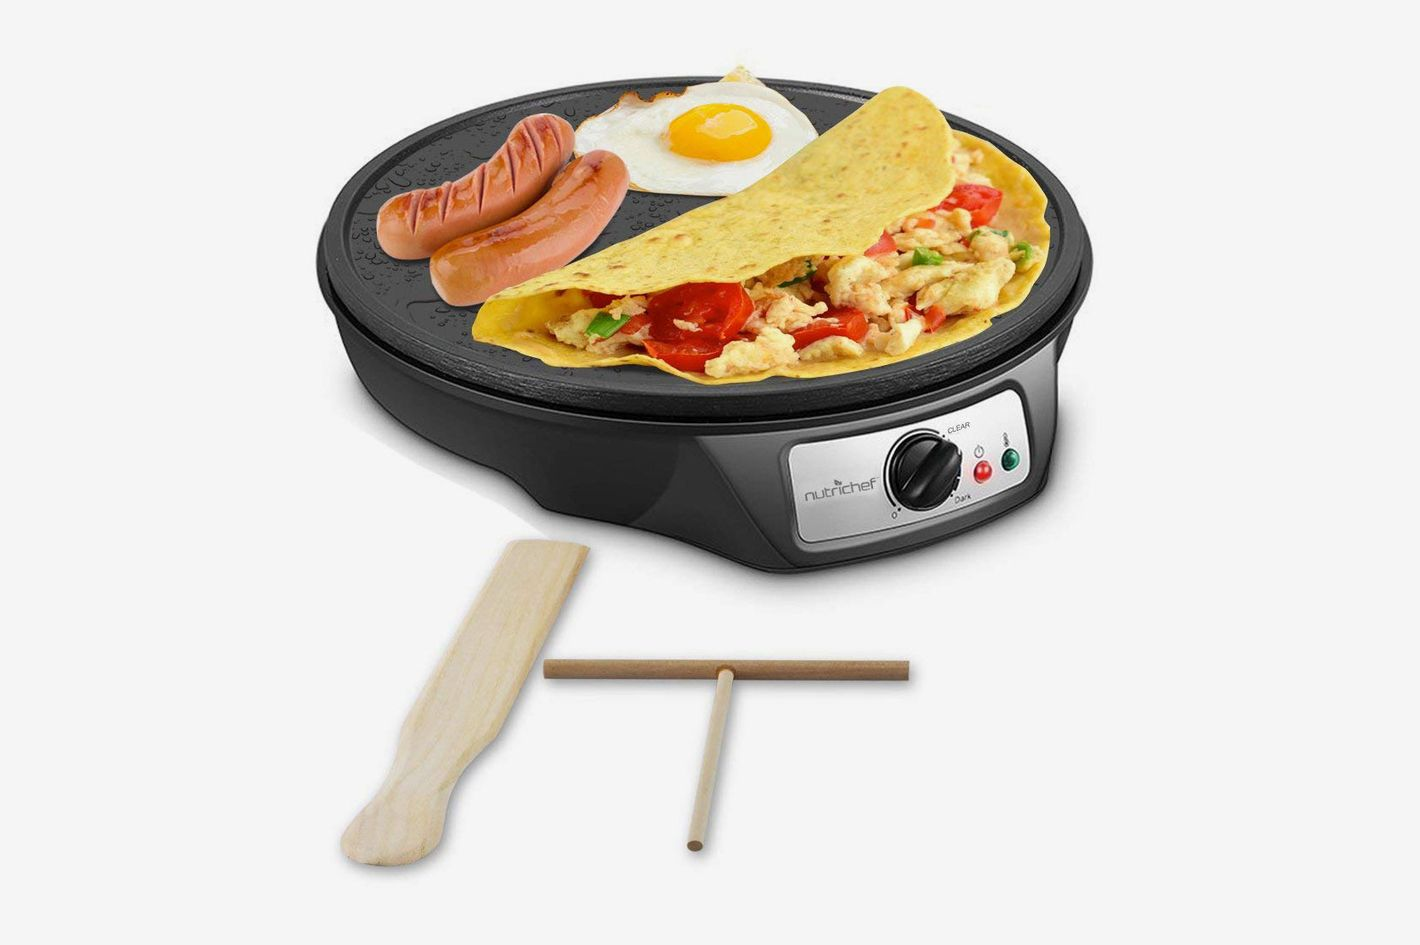 NutriChef Electric Griddle Crepe Maker Cooktop — Nonstick 12 Inch Aluminum Hot Plate